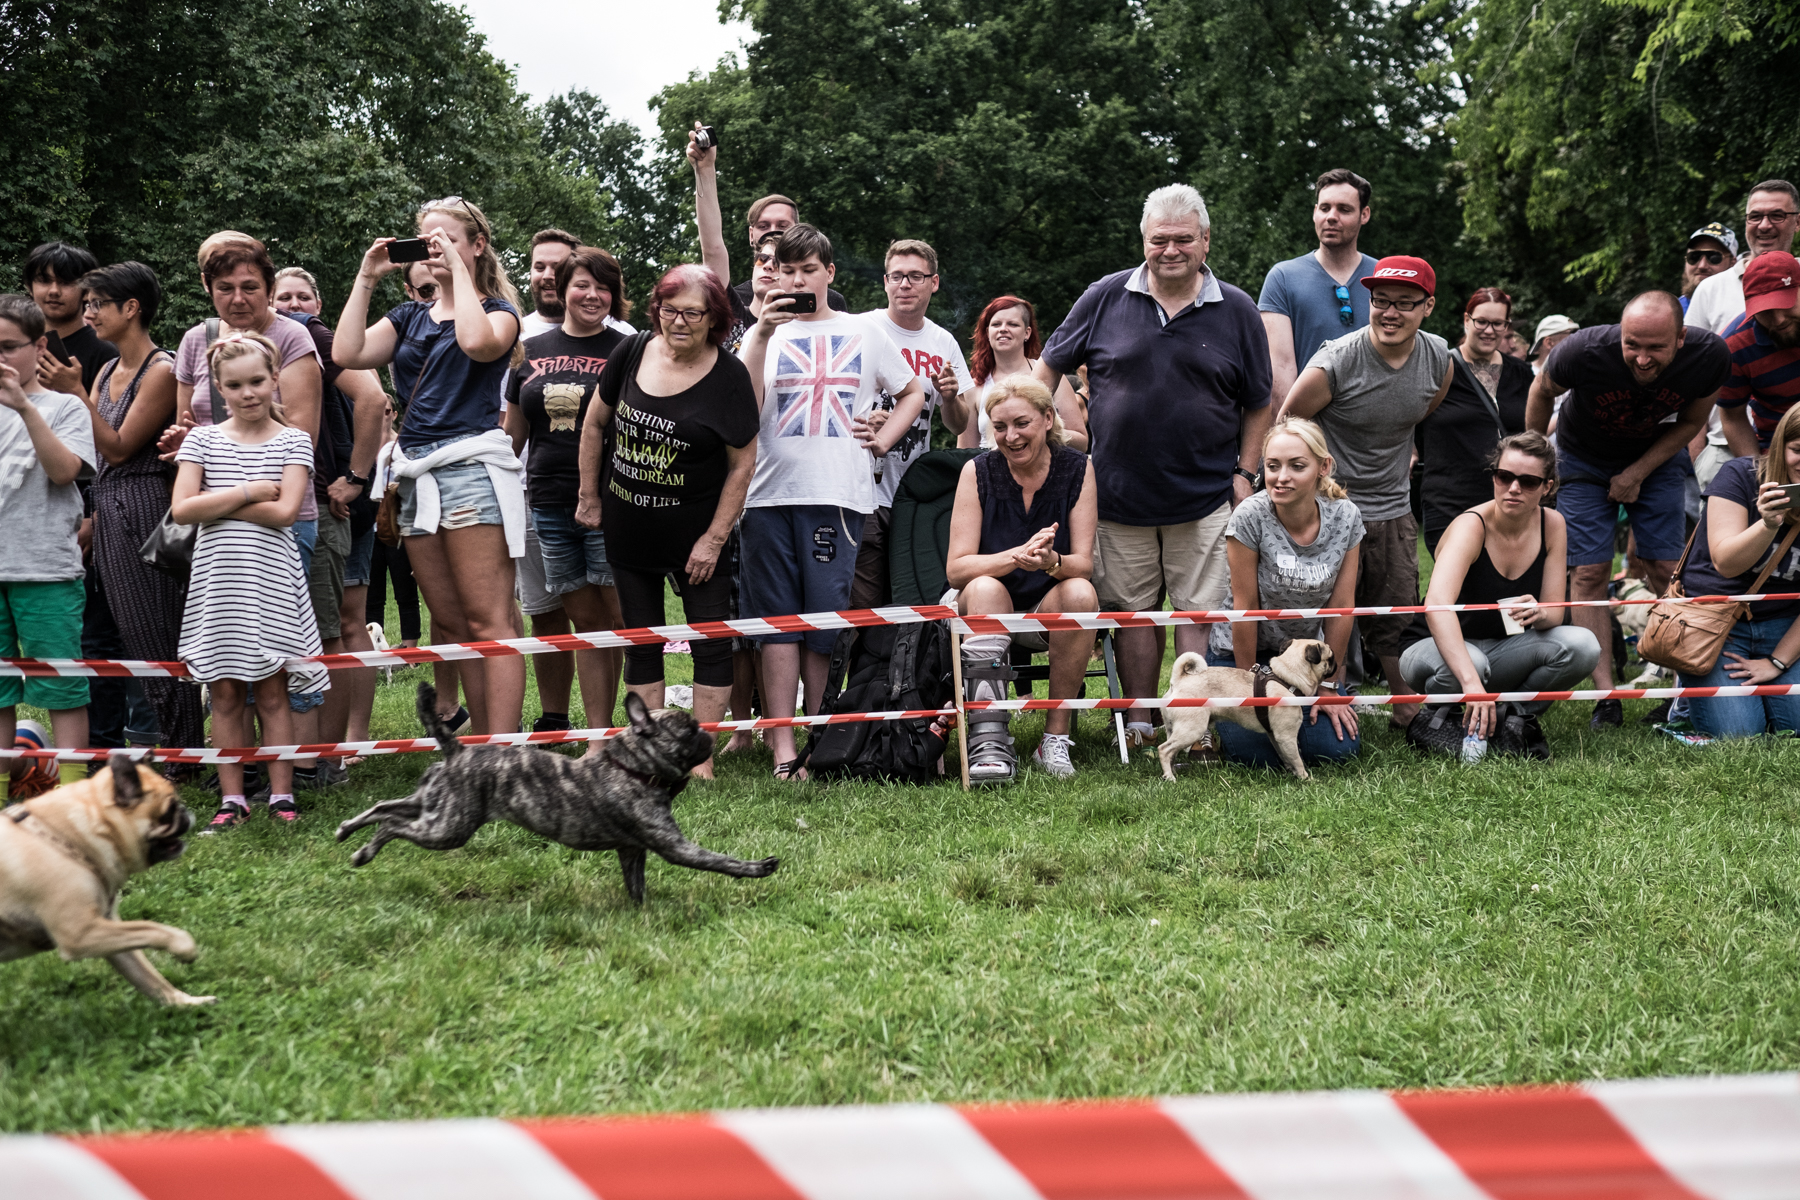 People at a pug race in Offenbach